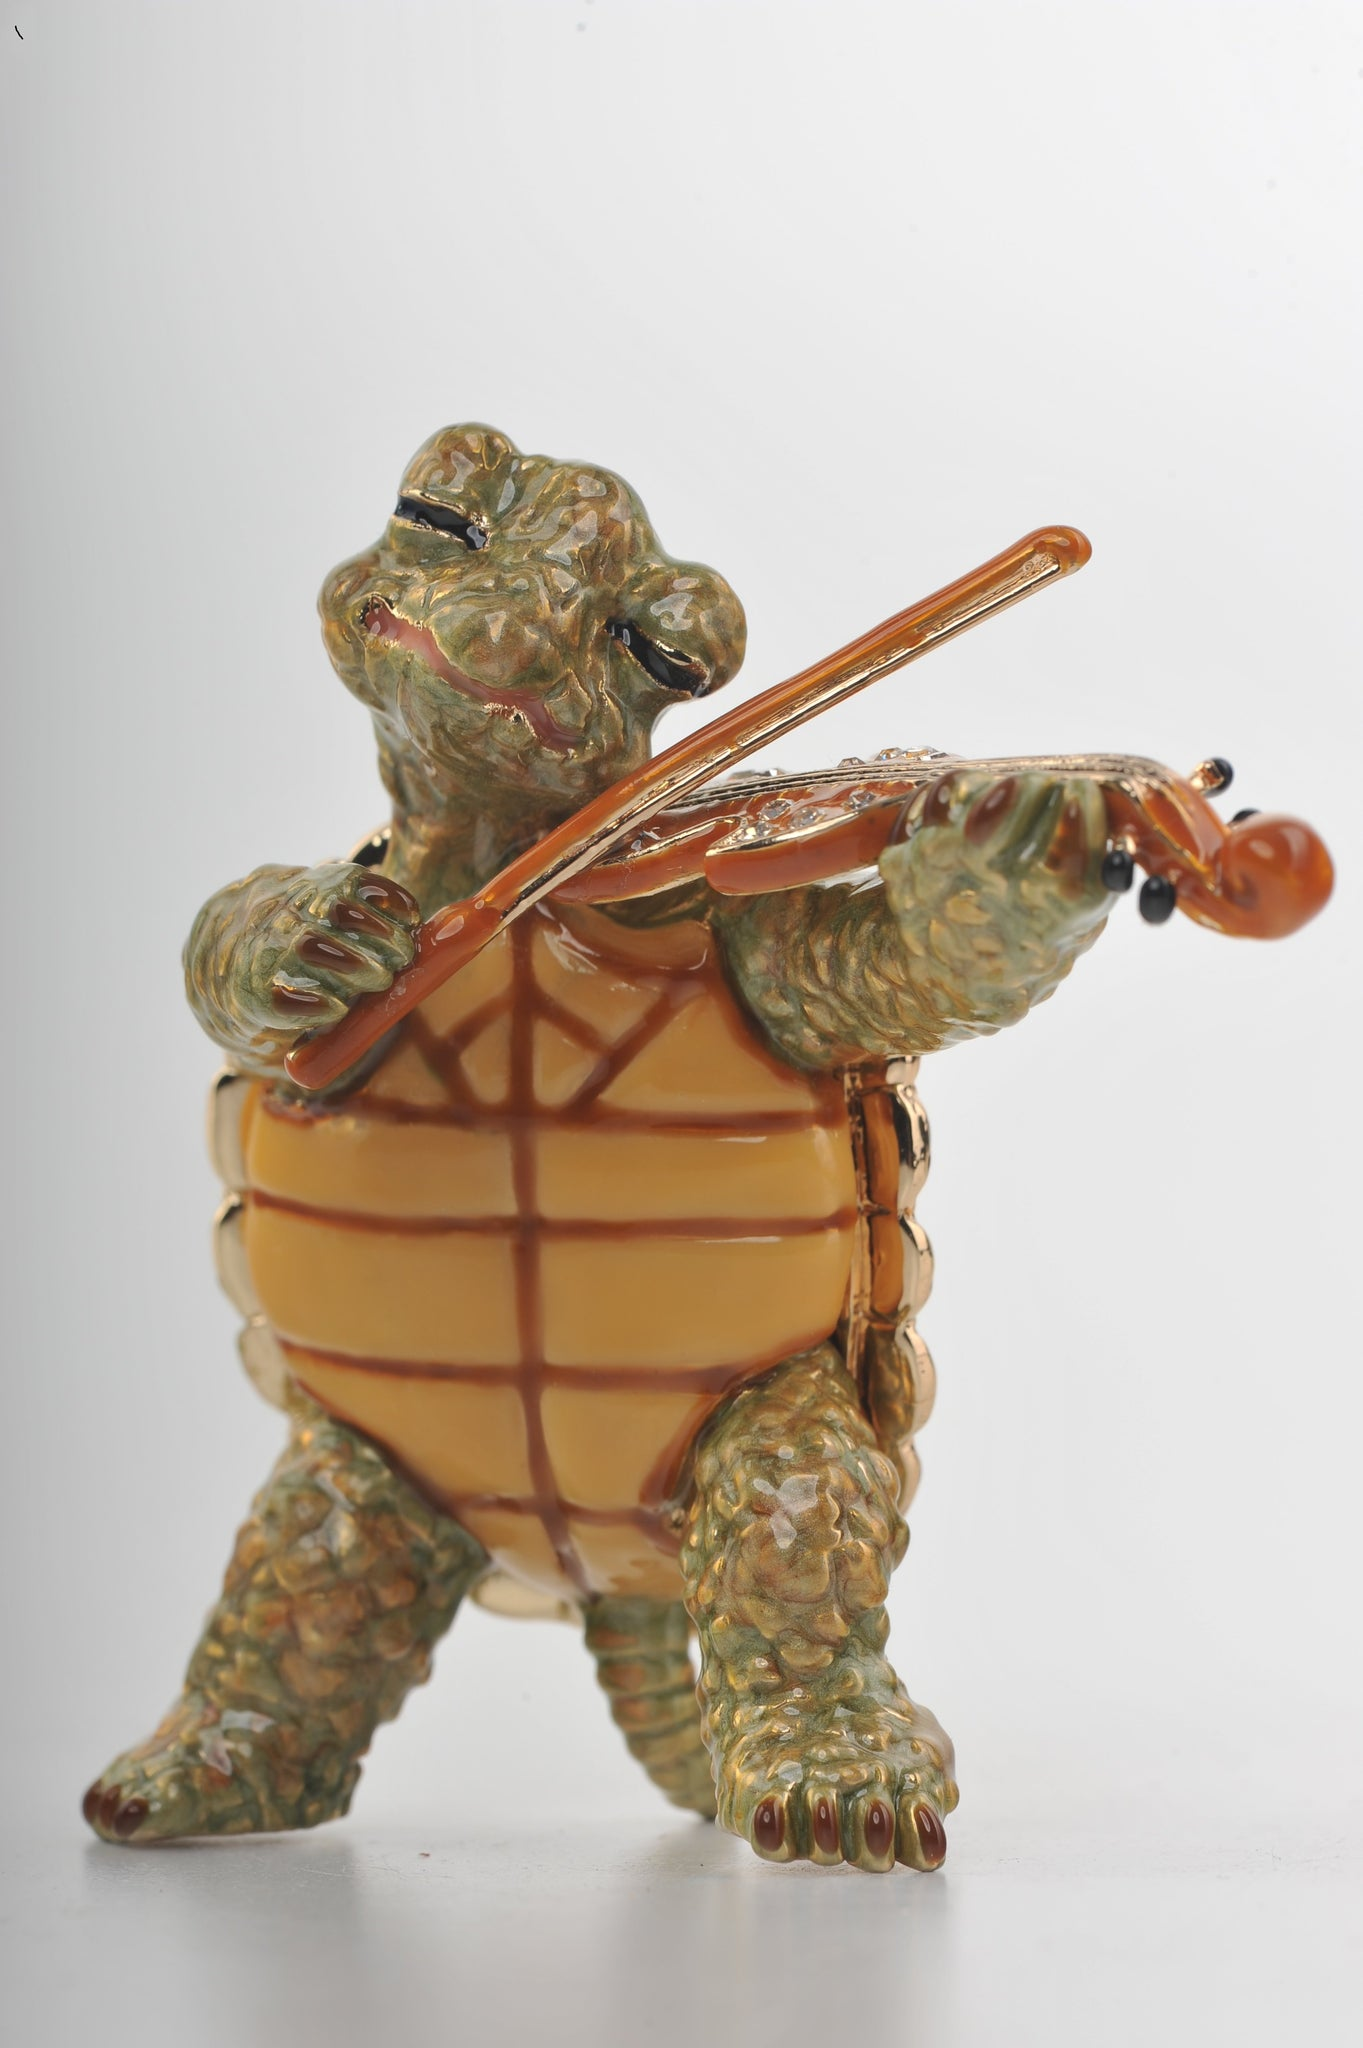 Turtle Playing the Violin